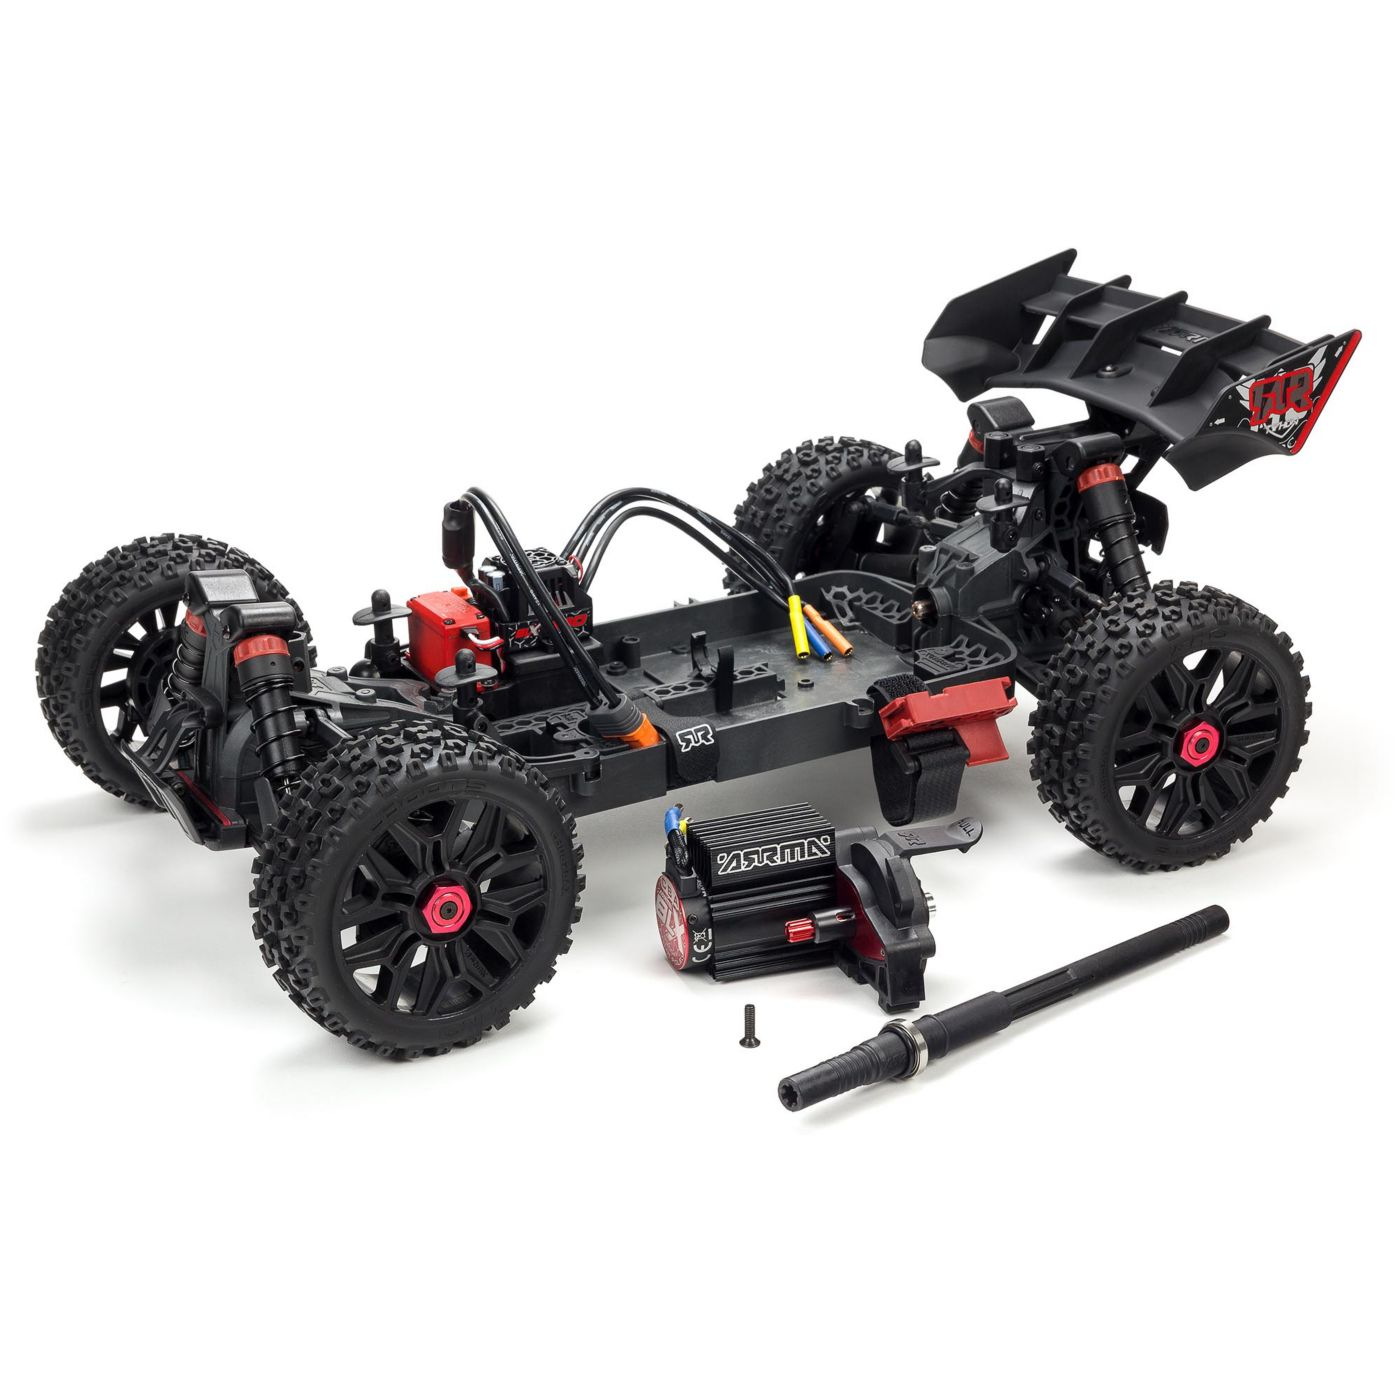 Arrma Typhon 3s Brushless 4wd Buggy rtr 04